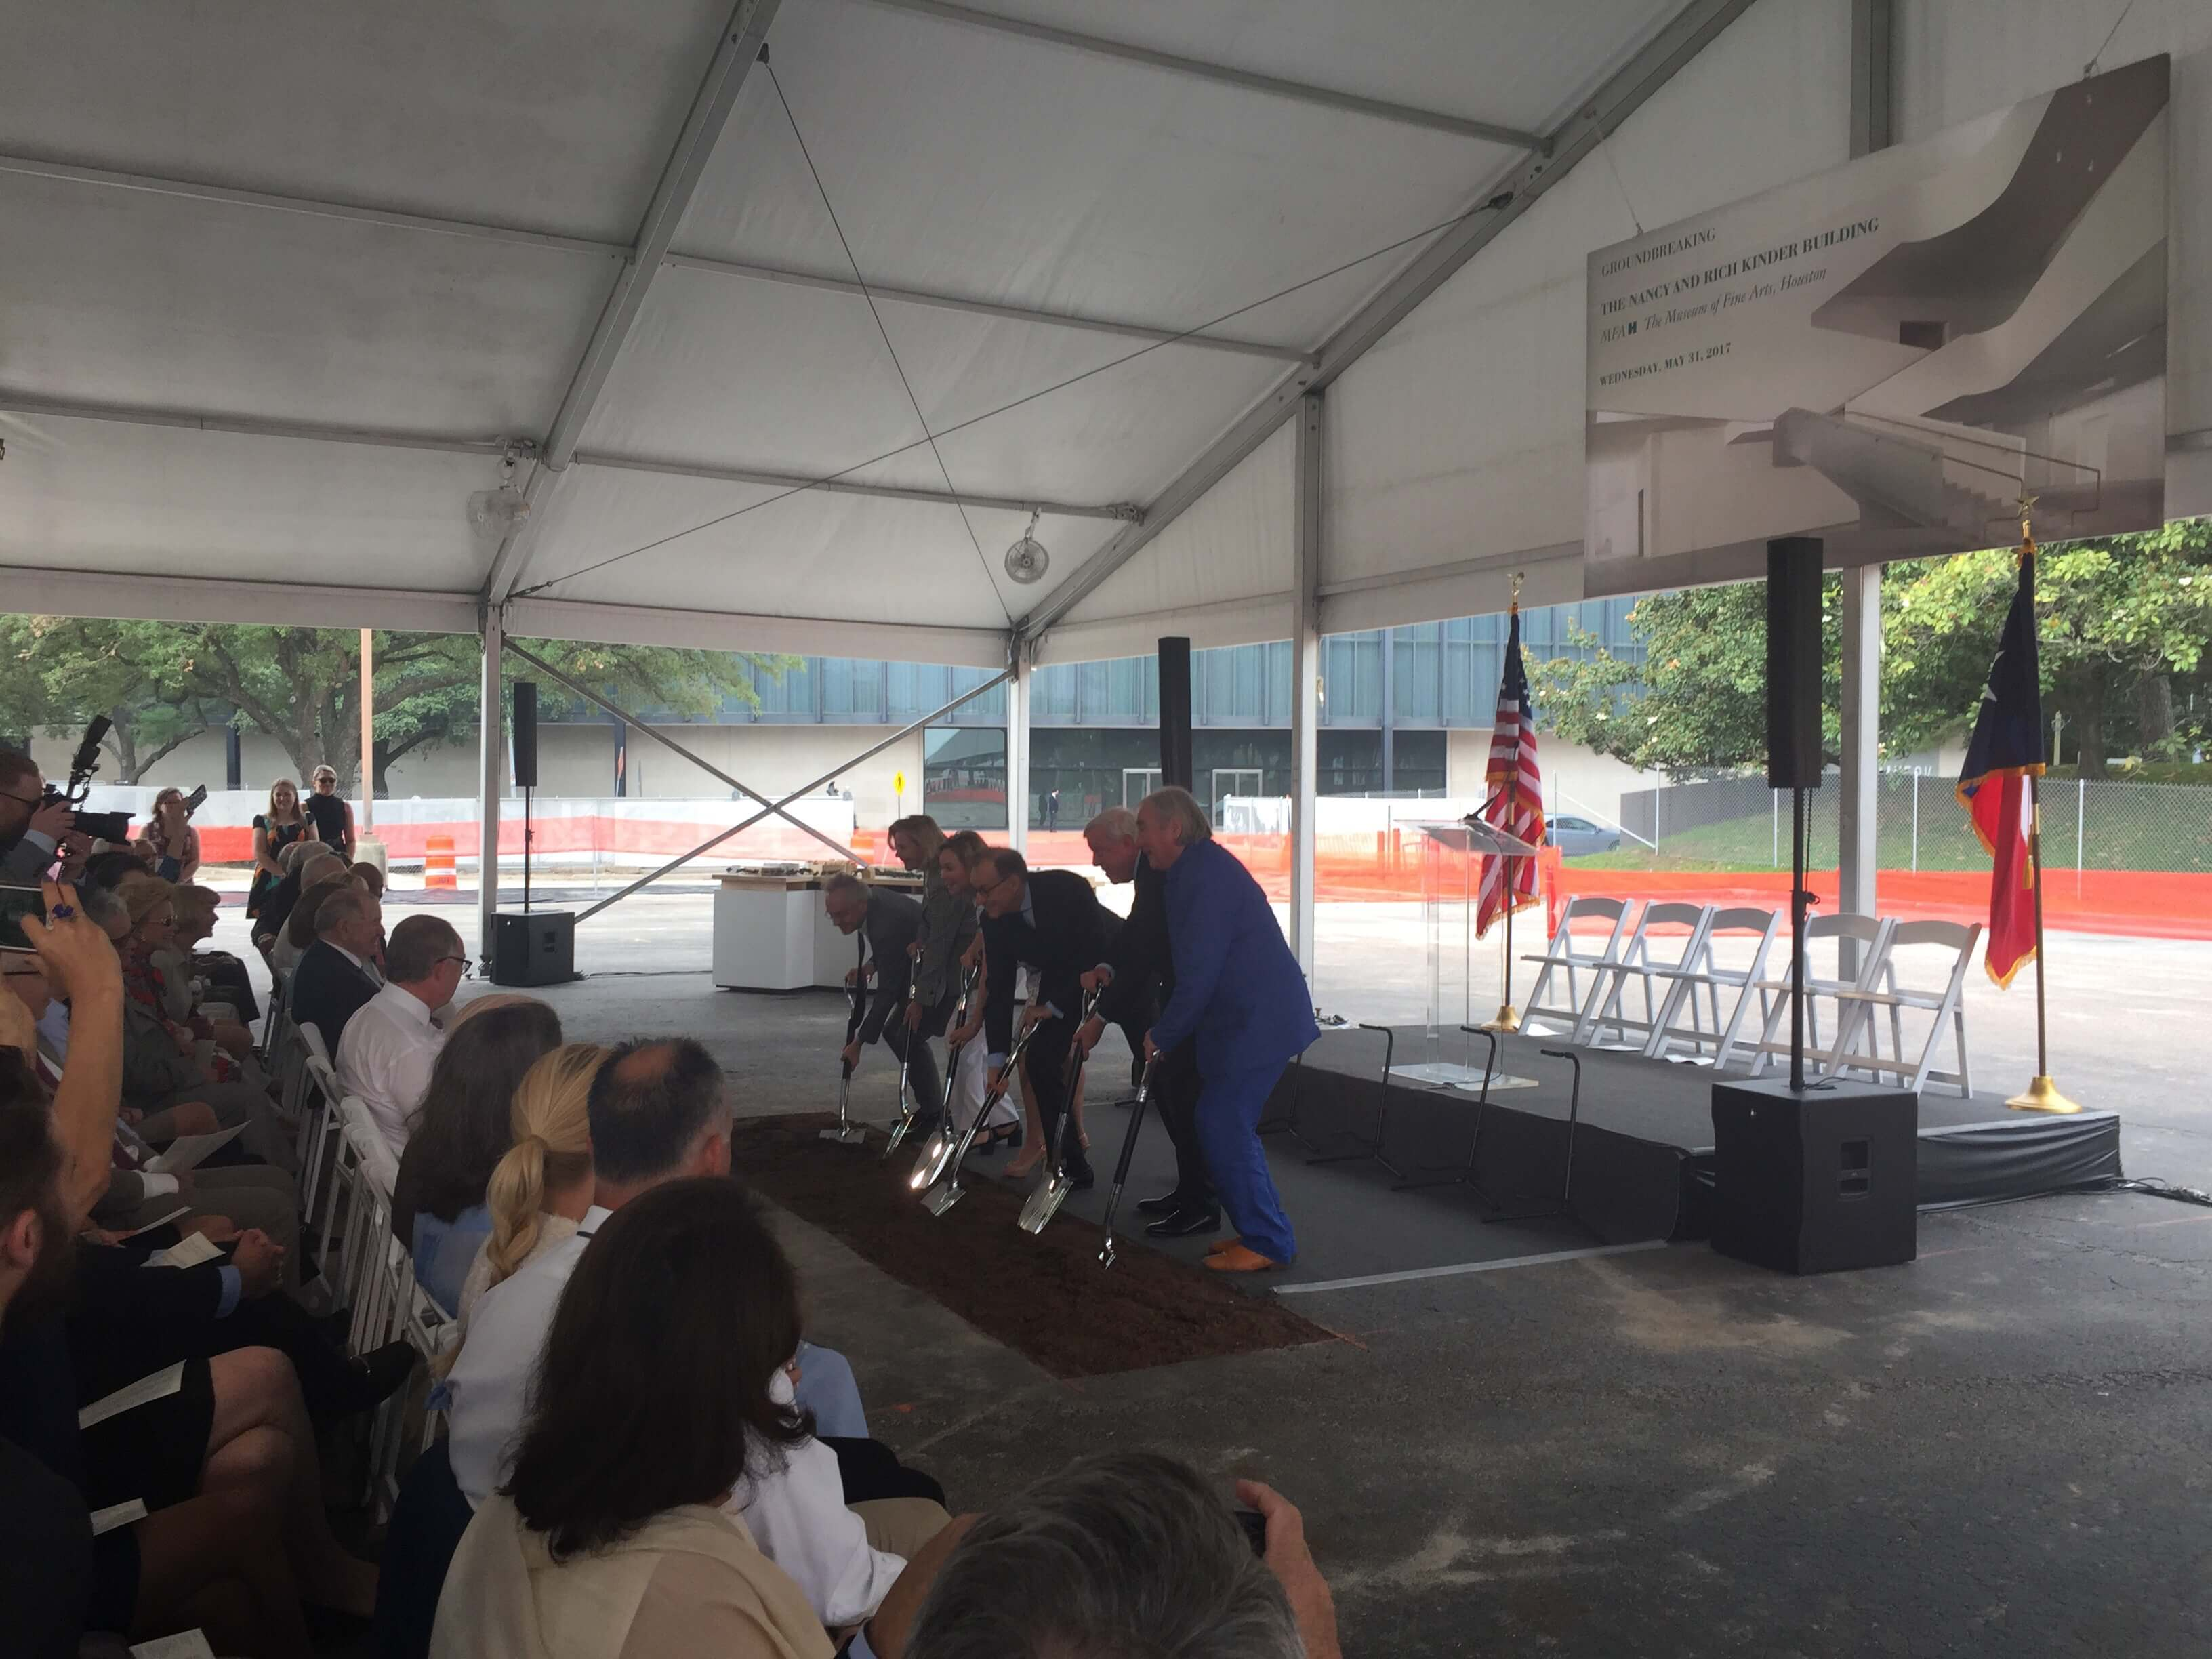 Digging in! MFAH officially breaks ground on the Nancy and Rich Kinder Building.